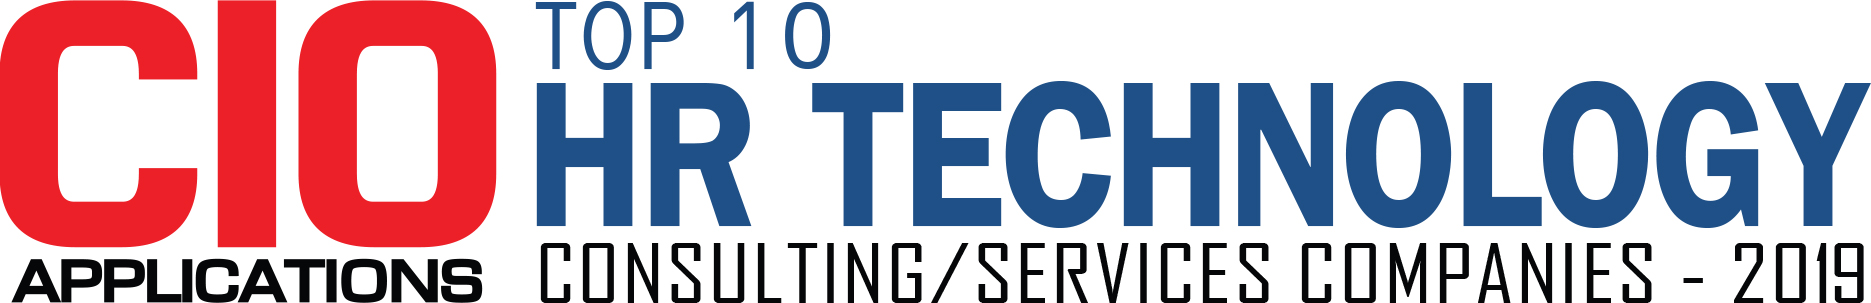 Top 10 HR Technology Consulting/Services Companies - 2019